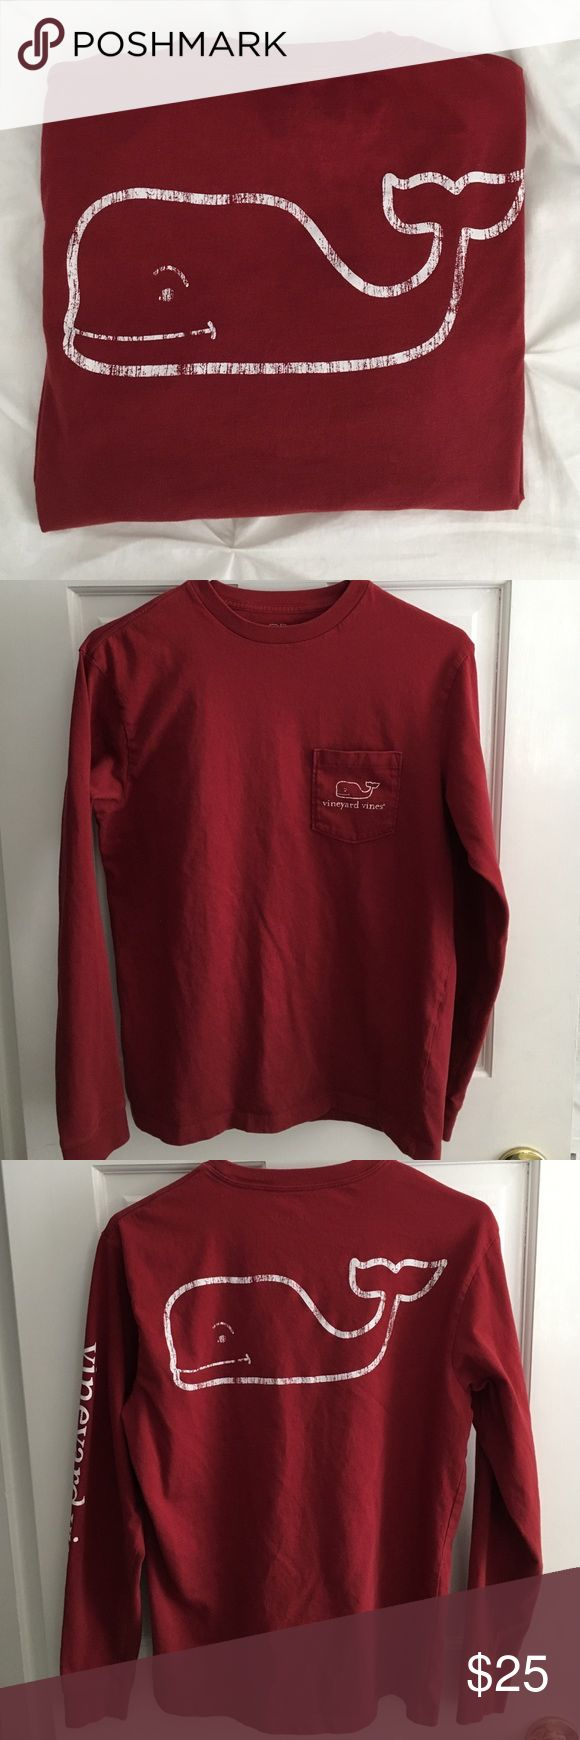 Maroon long sleeve vineyard vines t-shirt Maroon long sleeve vintage whale t-shirt from vineyard vines, men's size XS, very soft and comfy! Has whale logo on the back and the chest pocket, vineyard vines writing down the left sleeve Vineyard Vines Shirts Tees - Long Sleeve